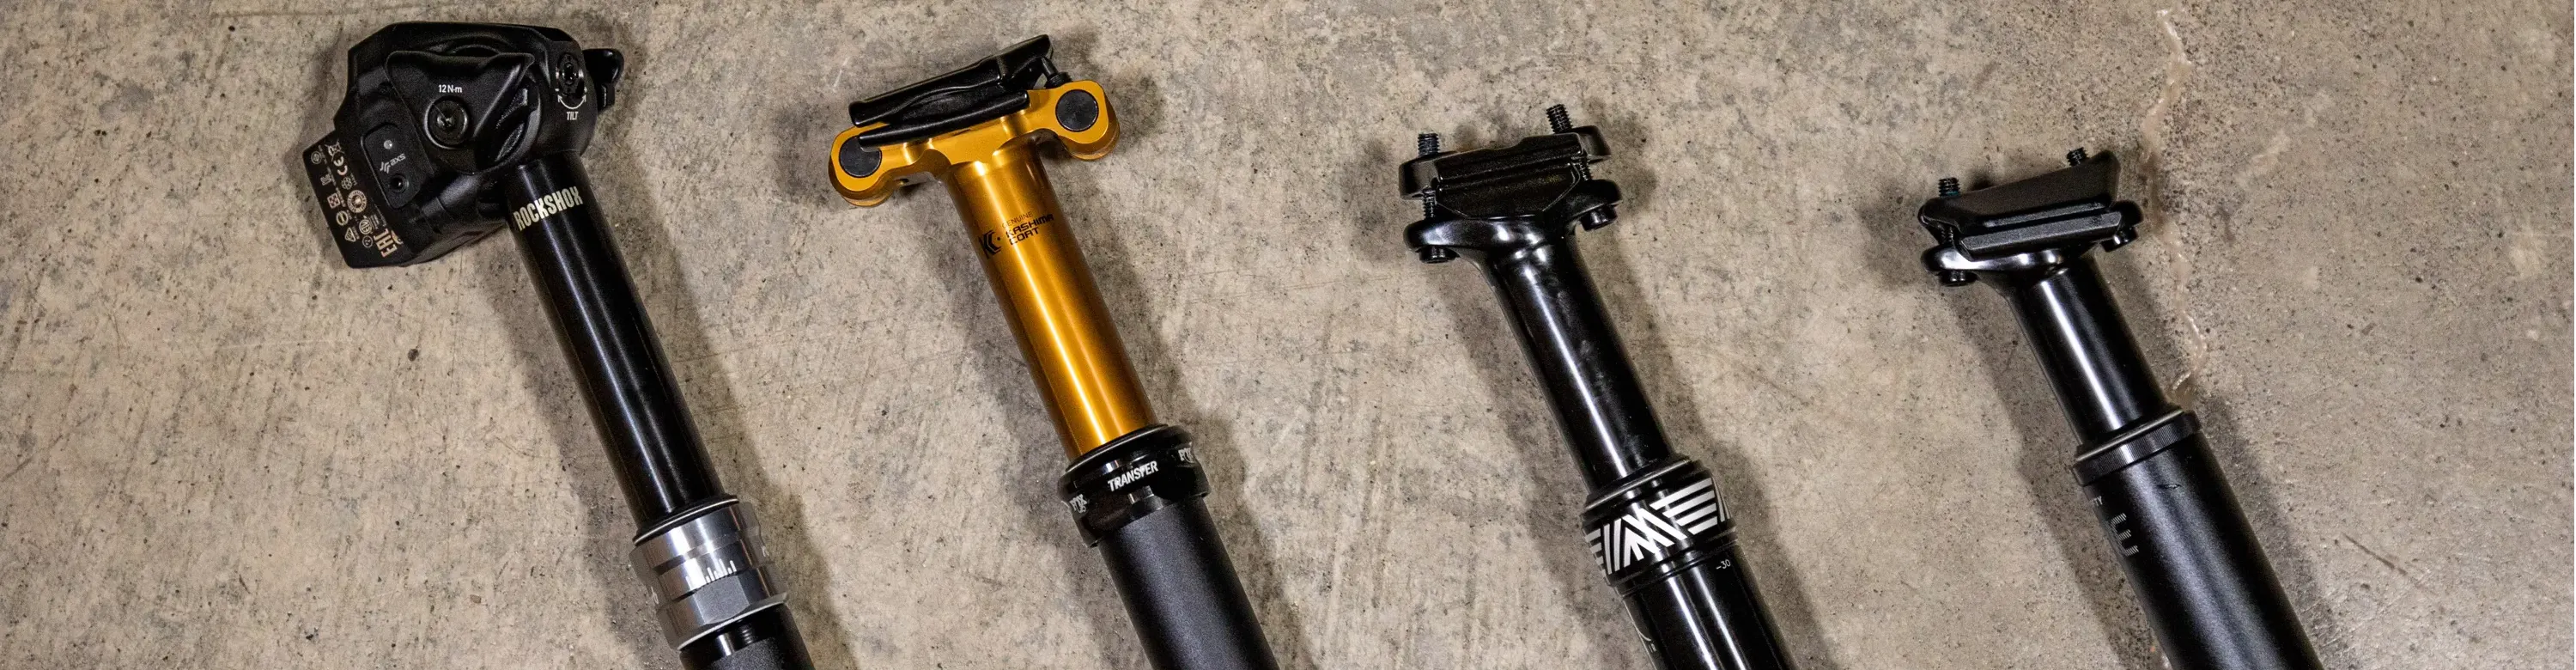 MTB Dropper Seatpost collection Image RockShox Reverb AXS Fox Transfer Post Factory Series PNW Components Rainier Gen 3 OneUp Components Dropper V2 laying down on the ground